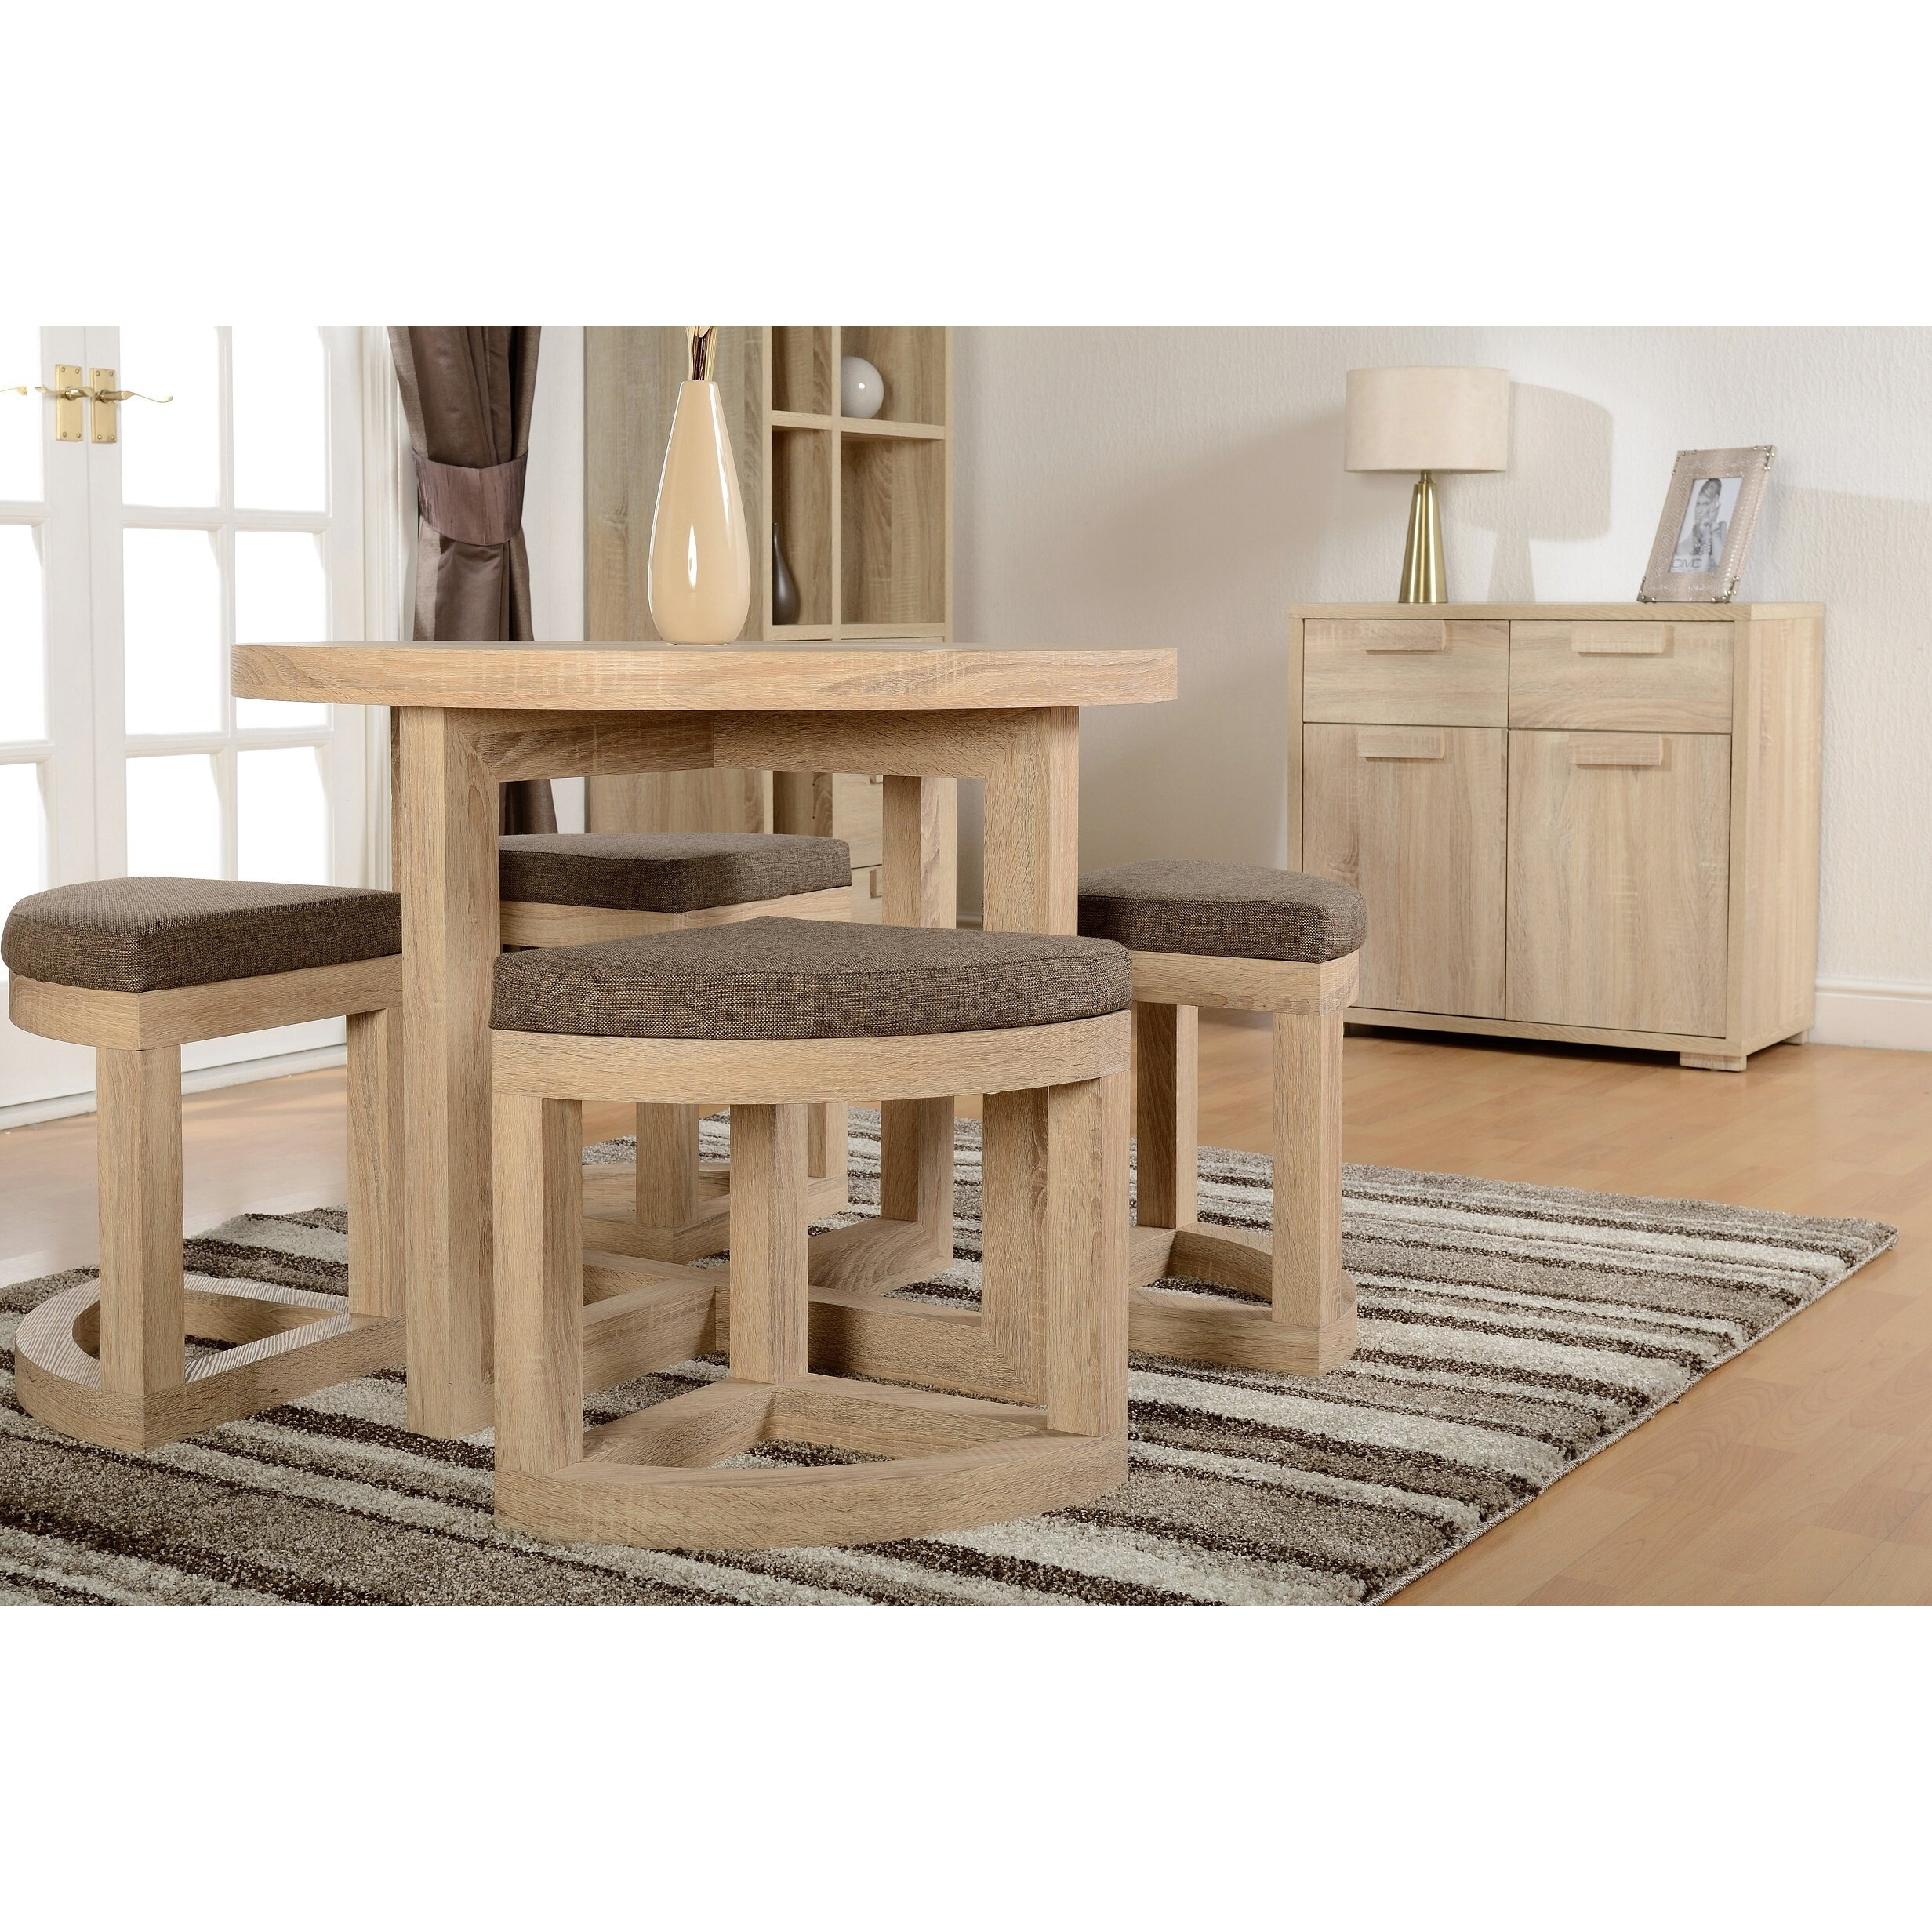 Home Haus Cambourne Dining Table And 4 Chairs Reviews Wayfair Uk